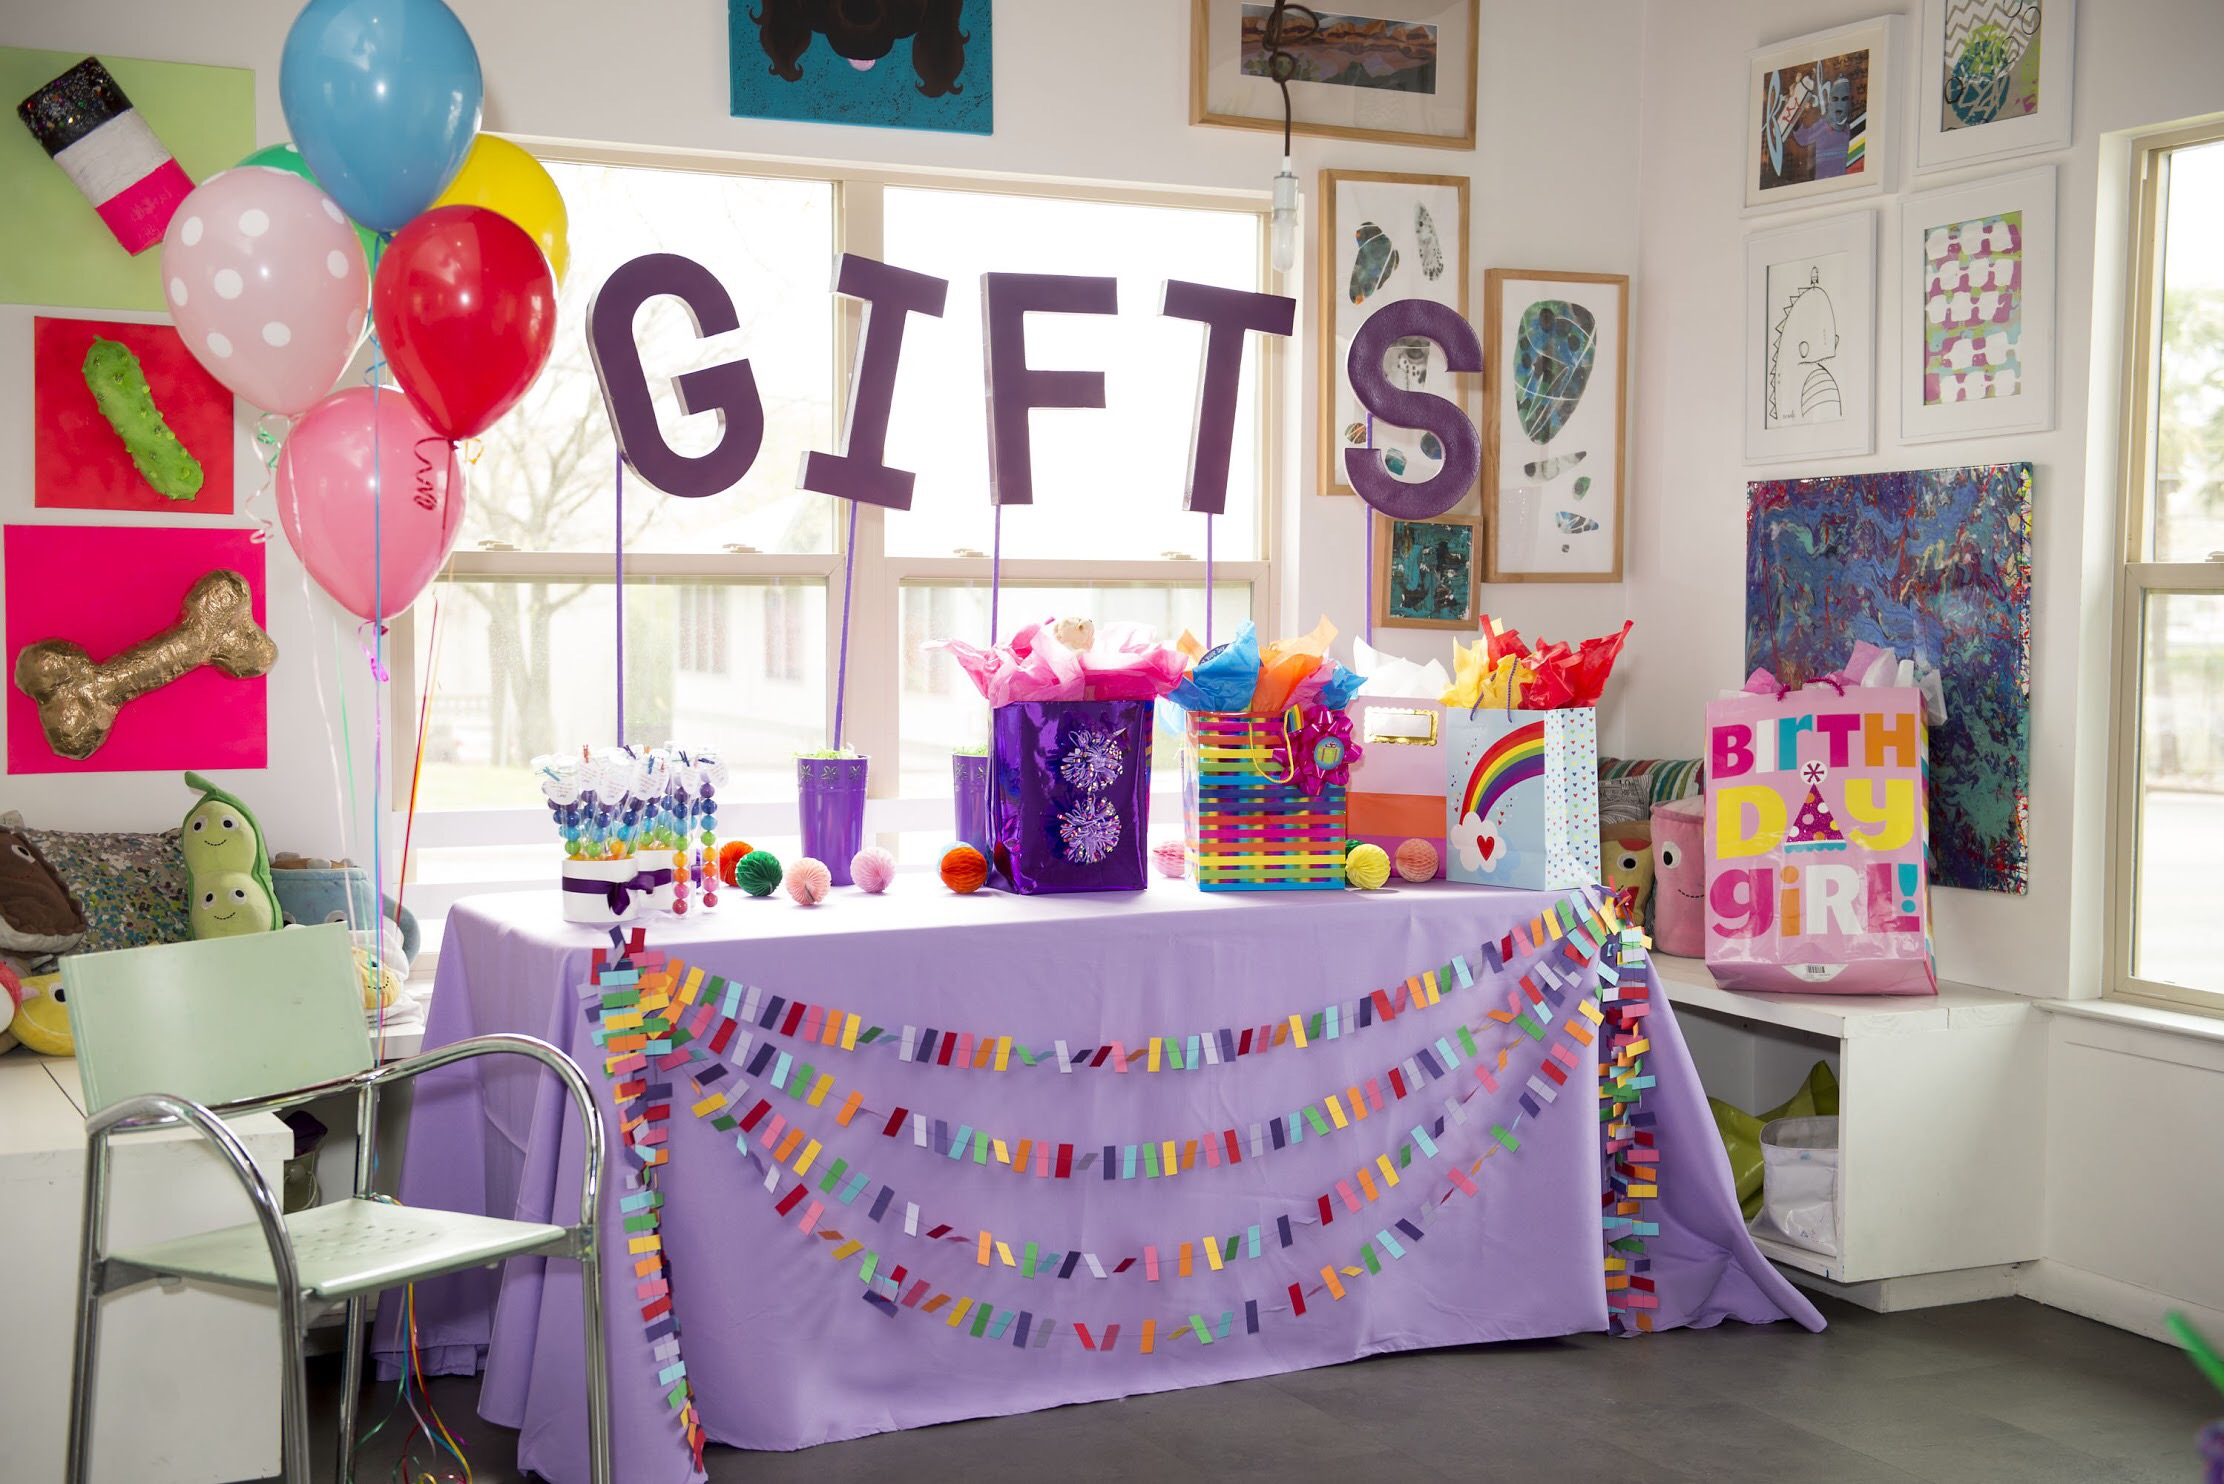 The gift table for an art themed birthday party is full of color and included GIFTS on oversized letters on sticks to be seen above the presents. See all the art themed party ideas on Mint Event Design www.minteventdesign.com #kidsparty #kidspartyideas #birthdaypartyideas #artparty #rainbowparty